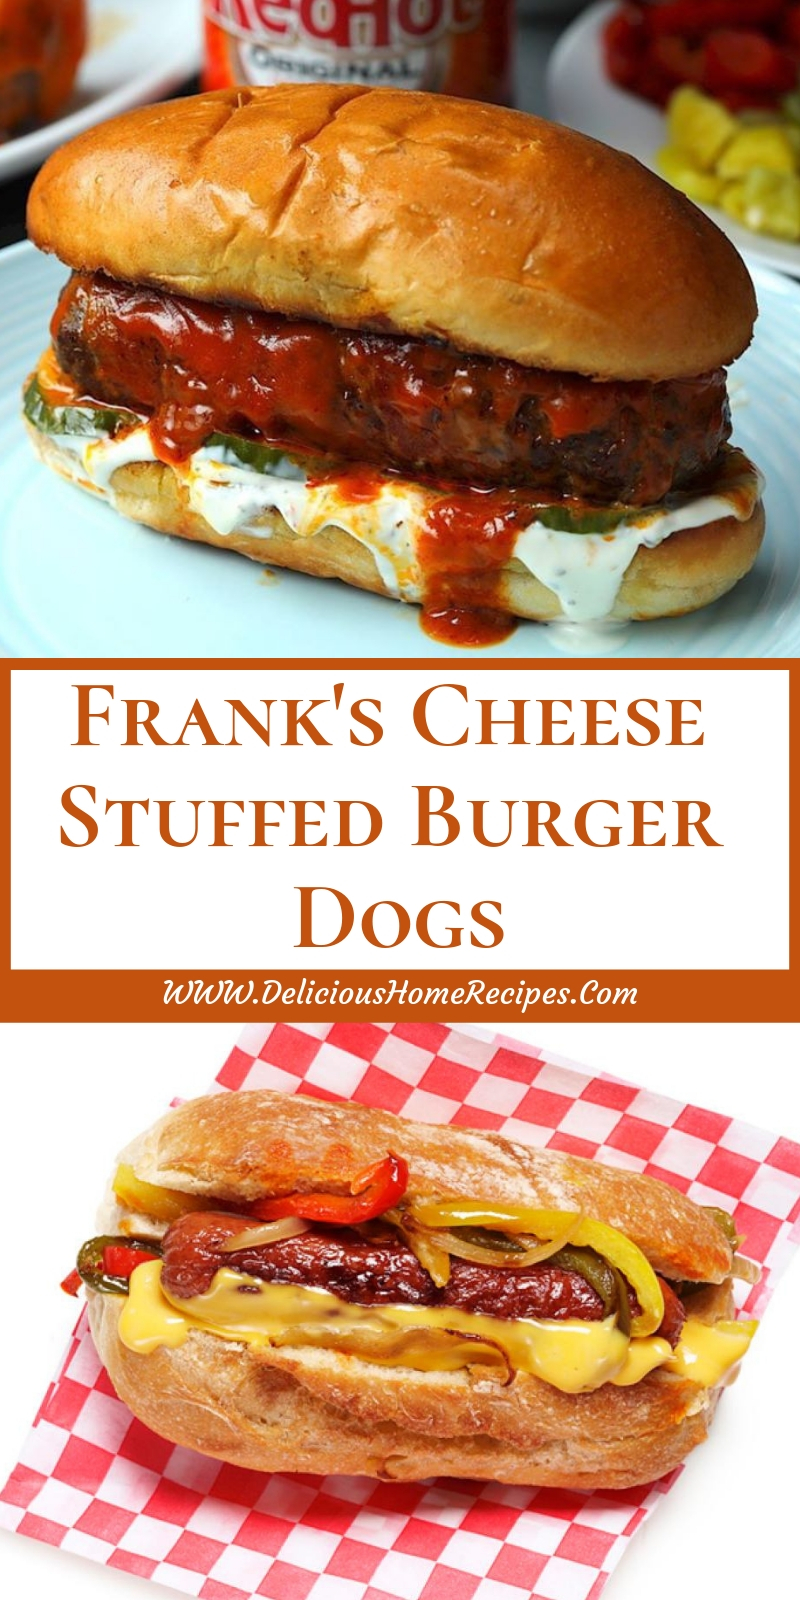 Frank's Cheese Stuffed Burger Dogs